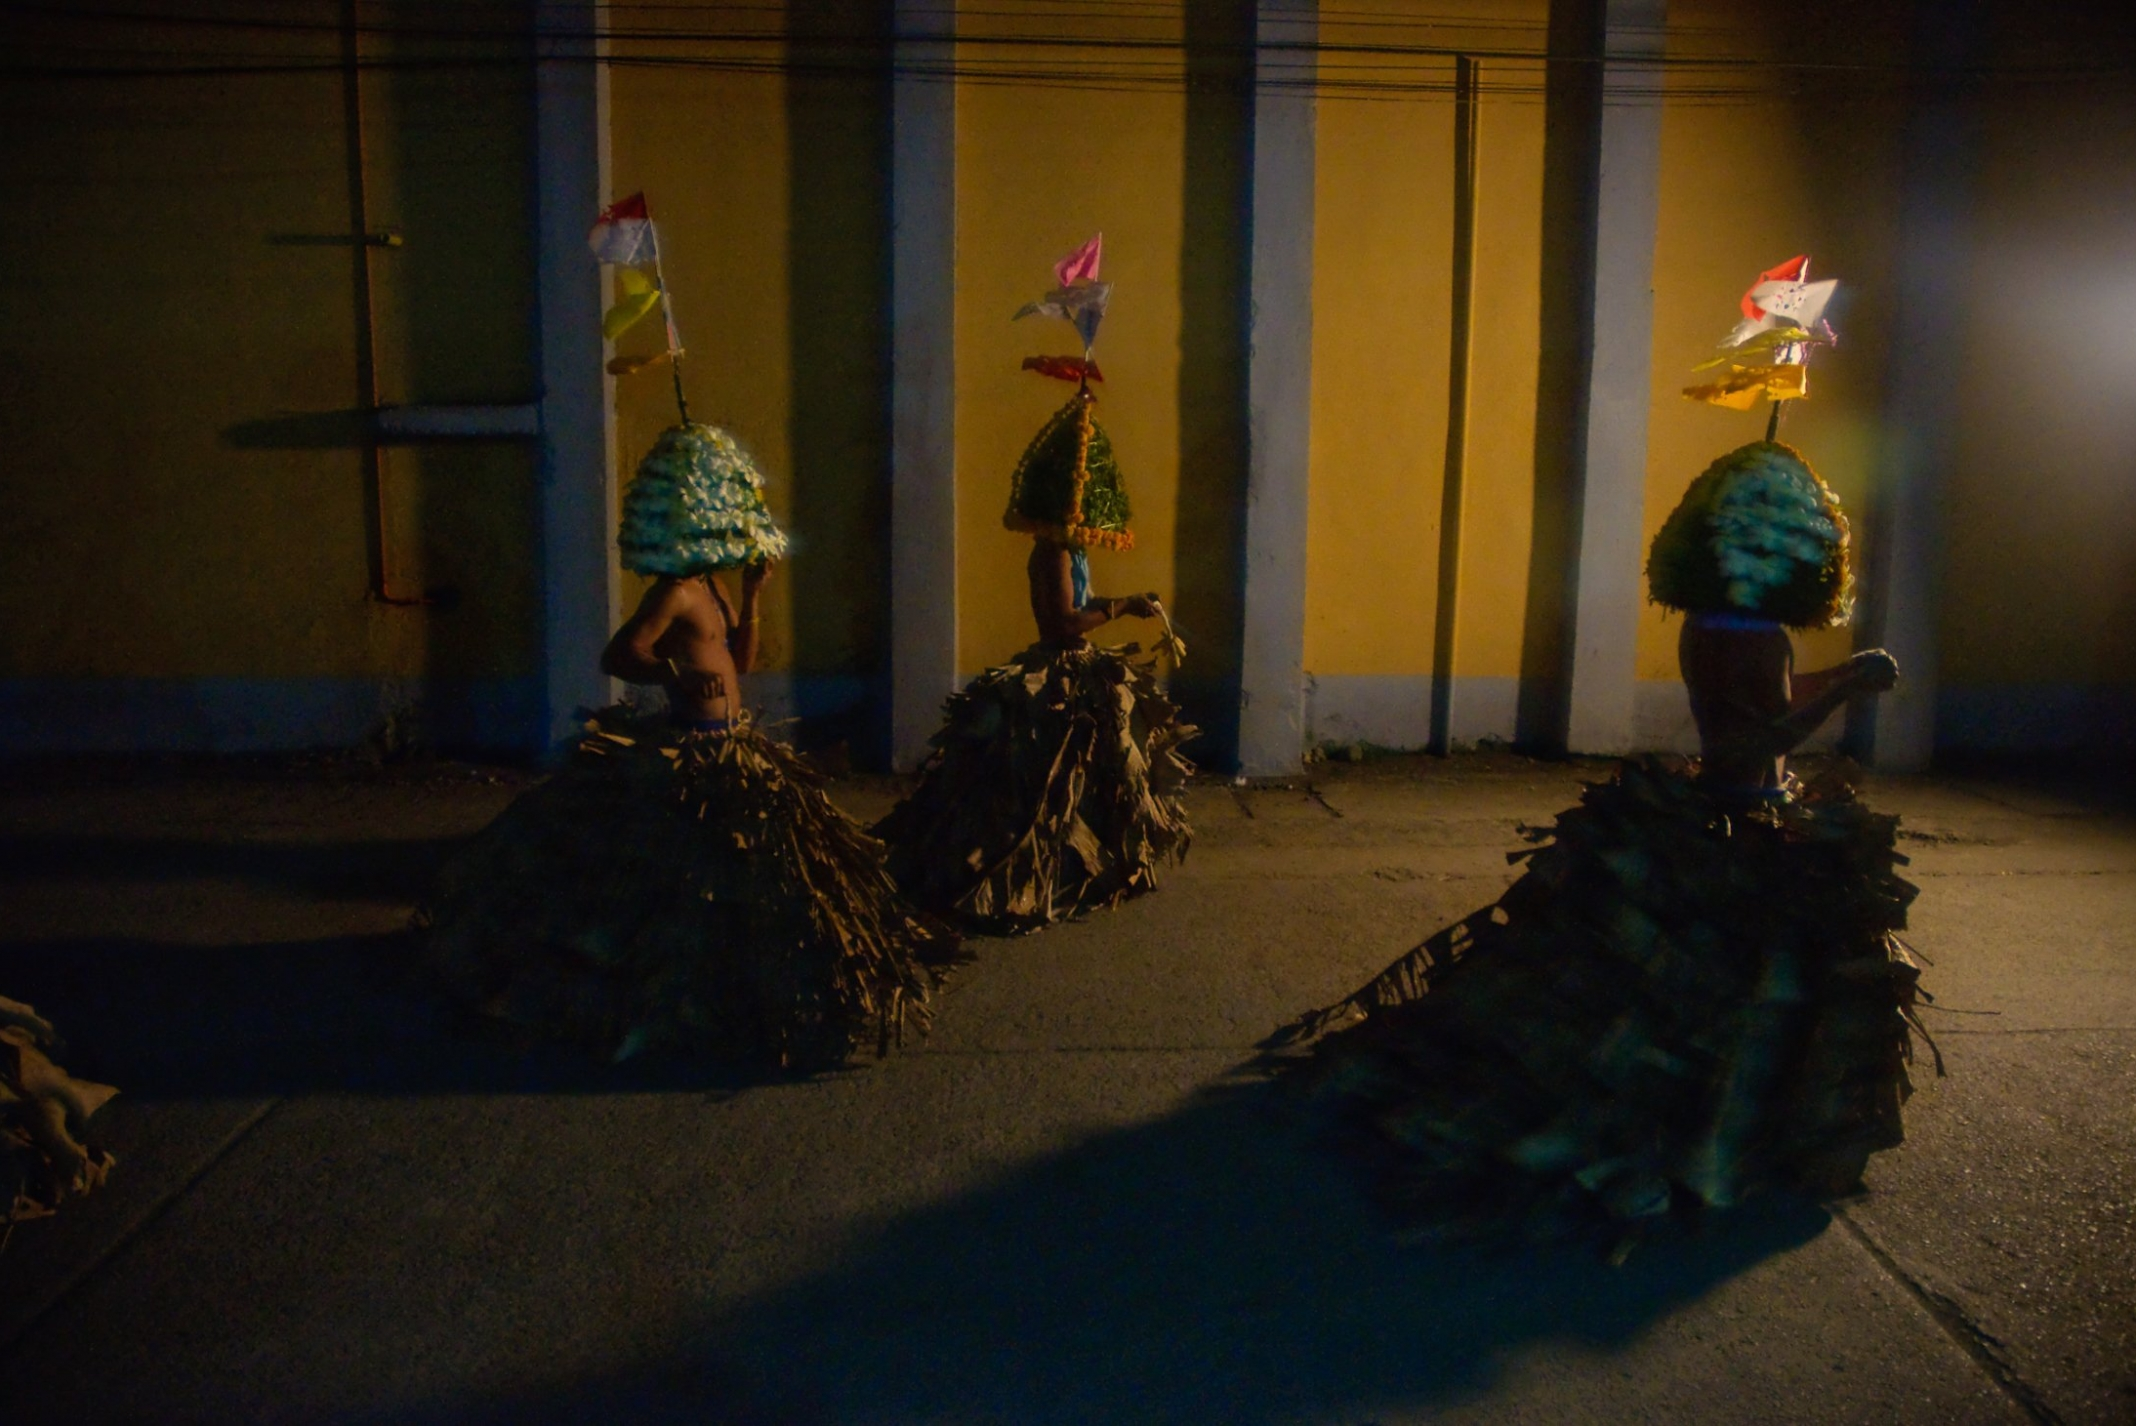 """In the Philippine province of Quezon there are still a number of men who wear elaborate costumes while preforming their act of self flagellation. This unique costume with its colorful headdress called the """"tukarol"""" and its skirt called the """"saya"""" is the last of it's kind in the Philippine Islands. The ritual is preformed during the early hours of Good Friday with preparations taking place at the start of Holy Week."""